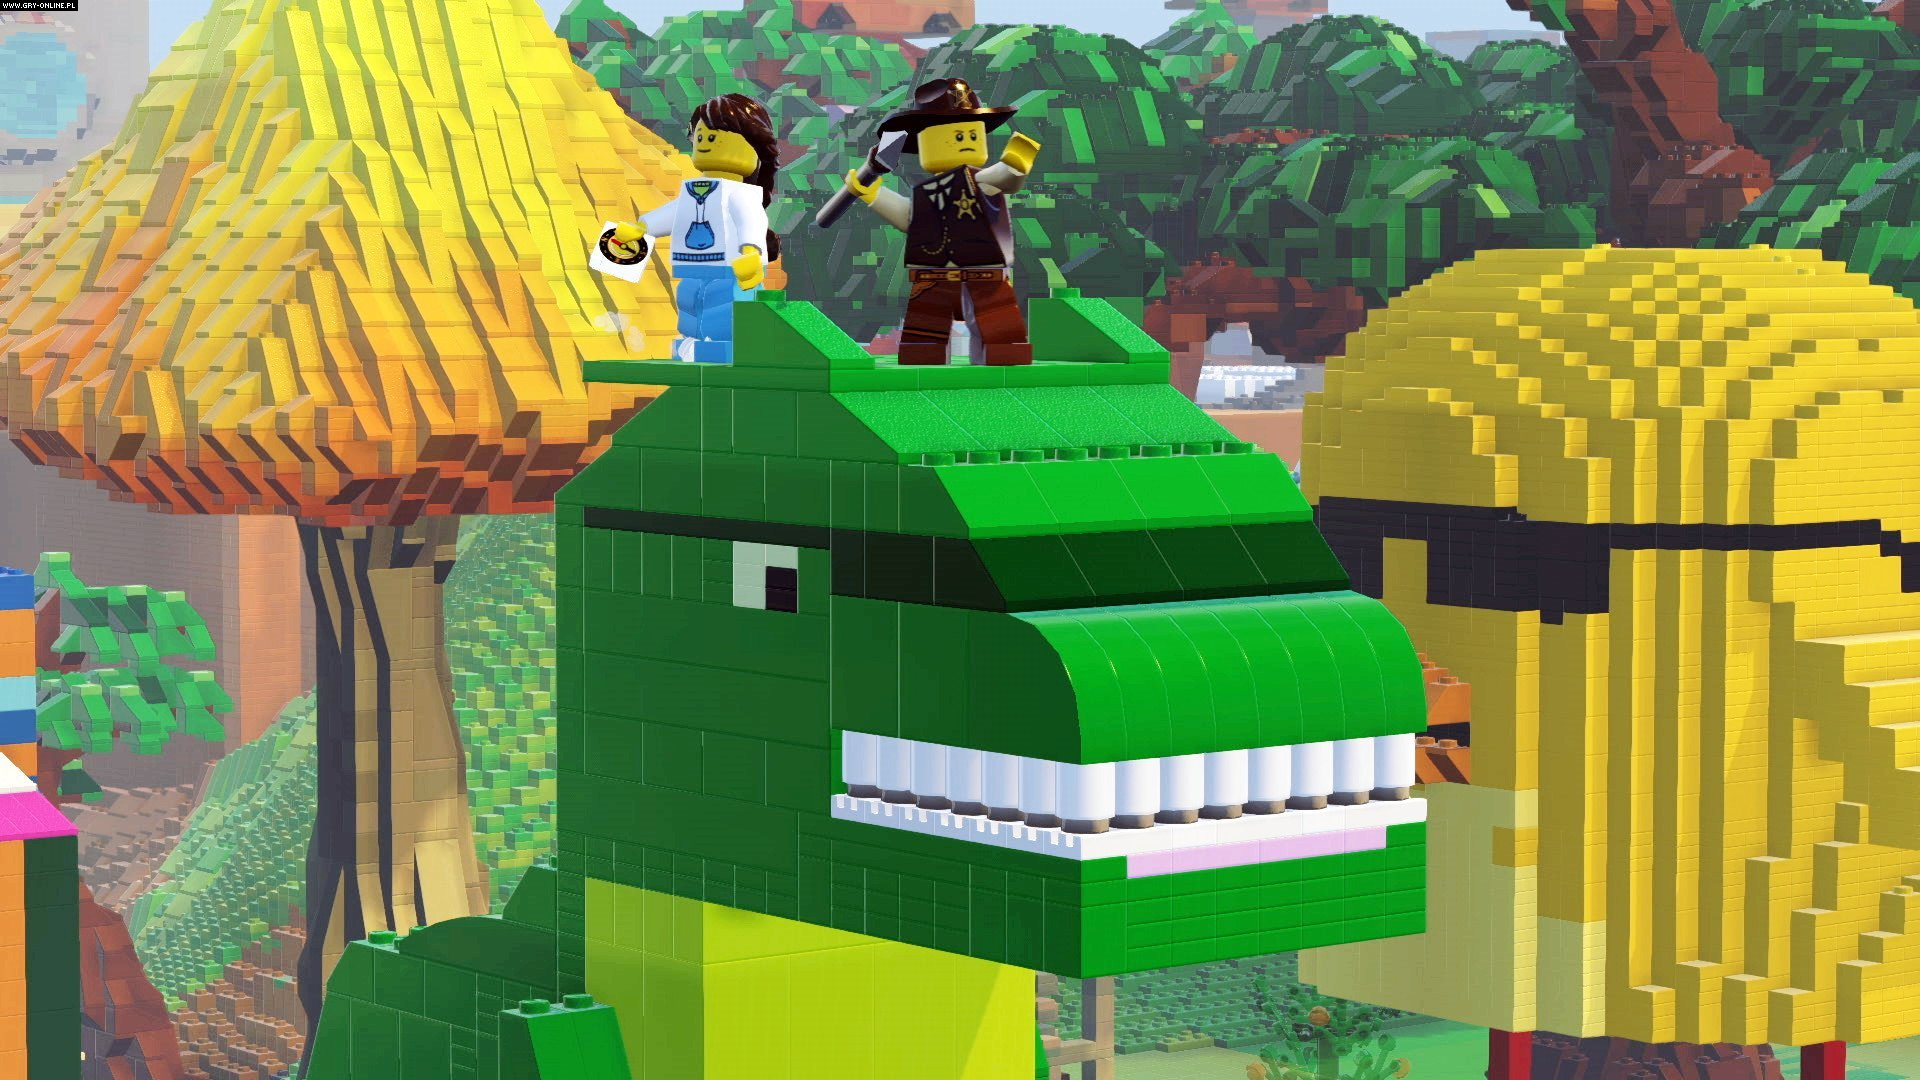 LEGO Worlds PC, PS4, XONE Games Image 10/26, Traveller's Tales, Warner Bros. Interactive Entertainment